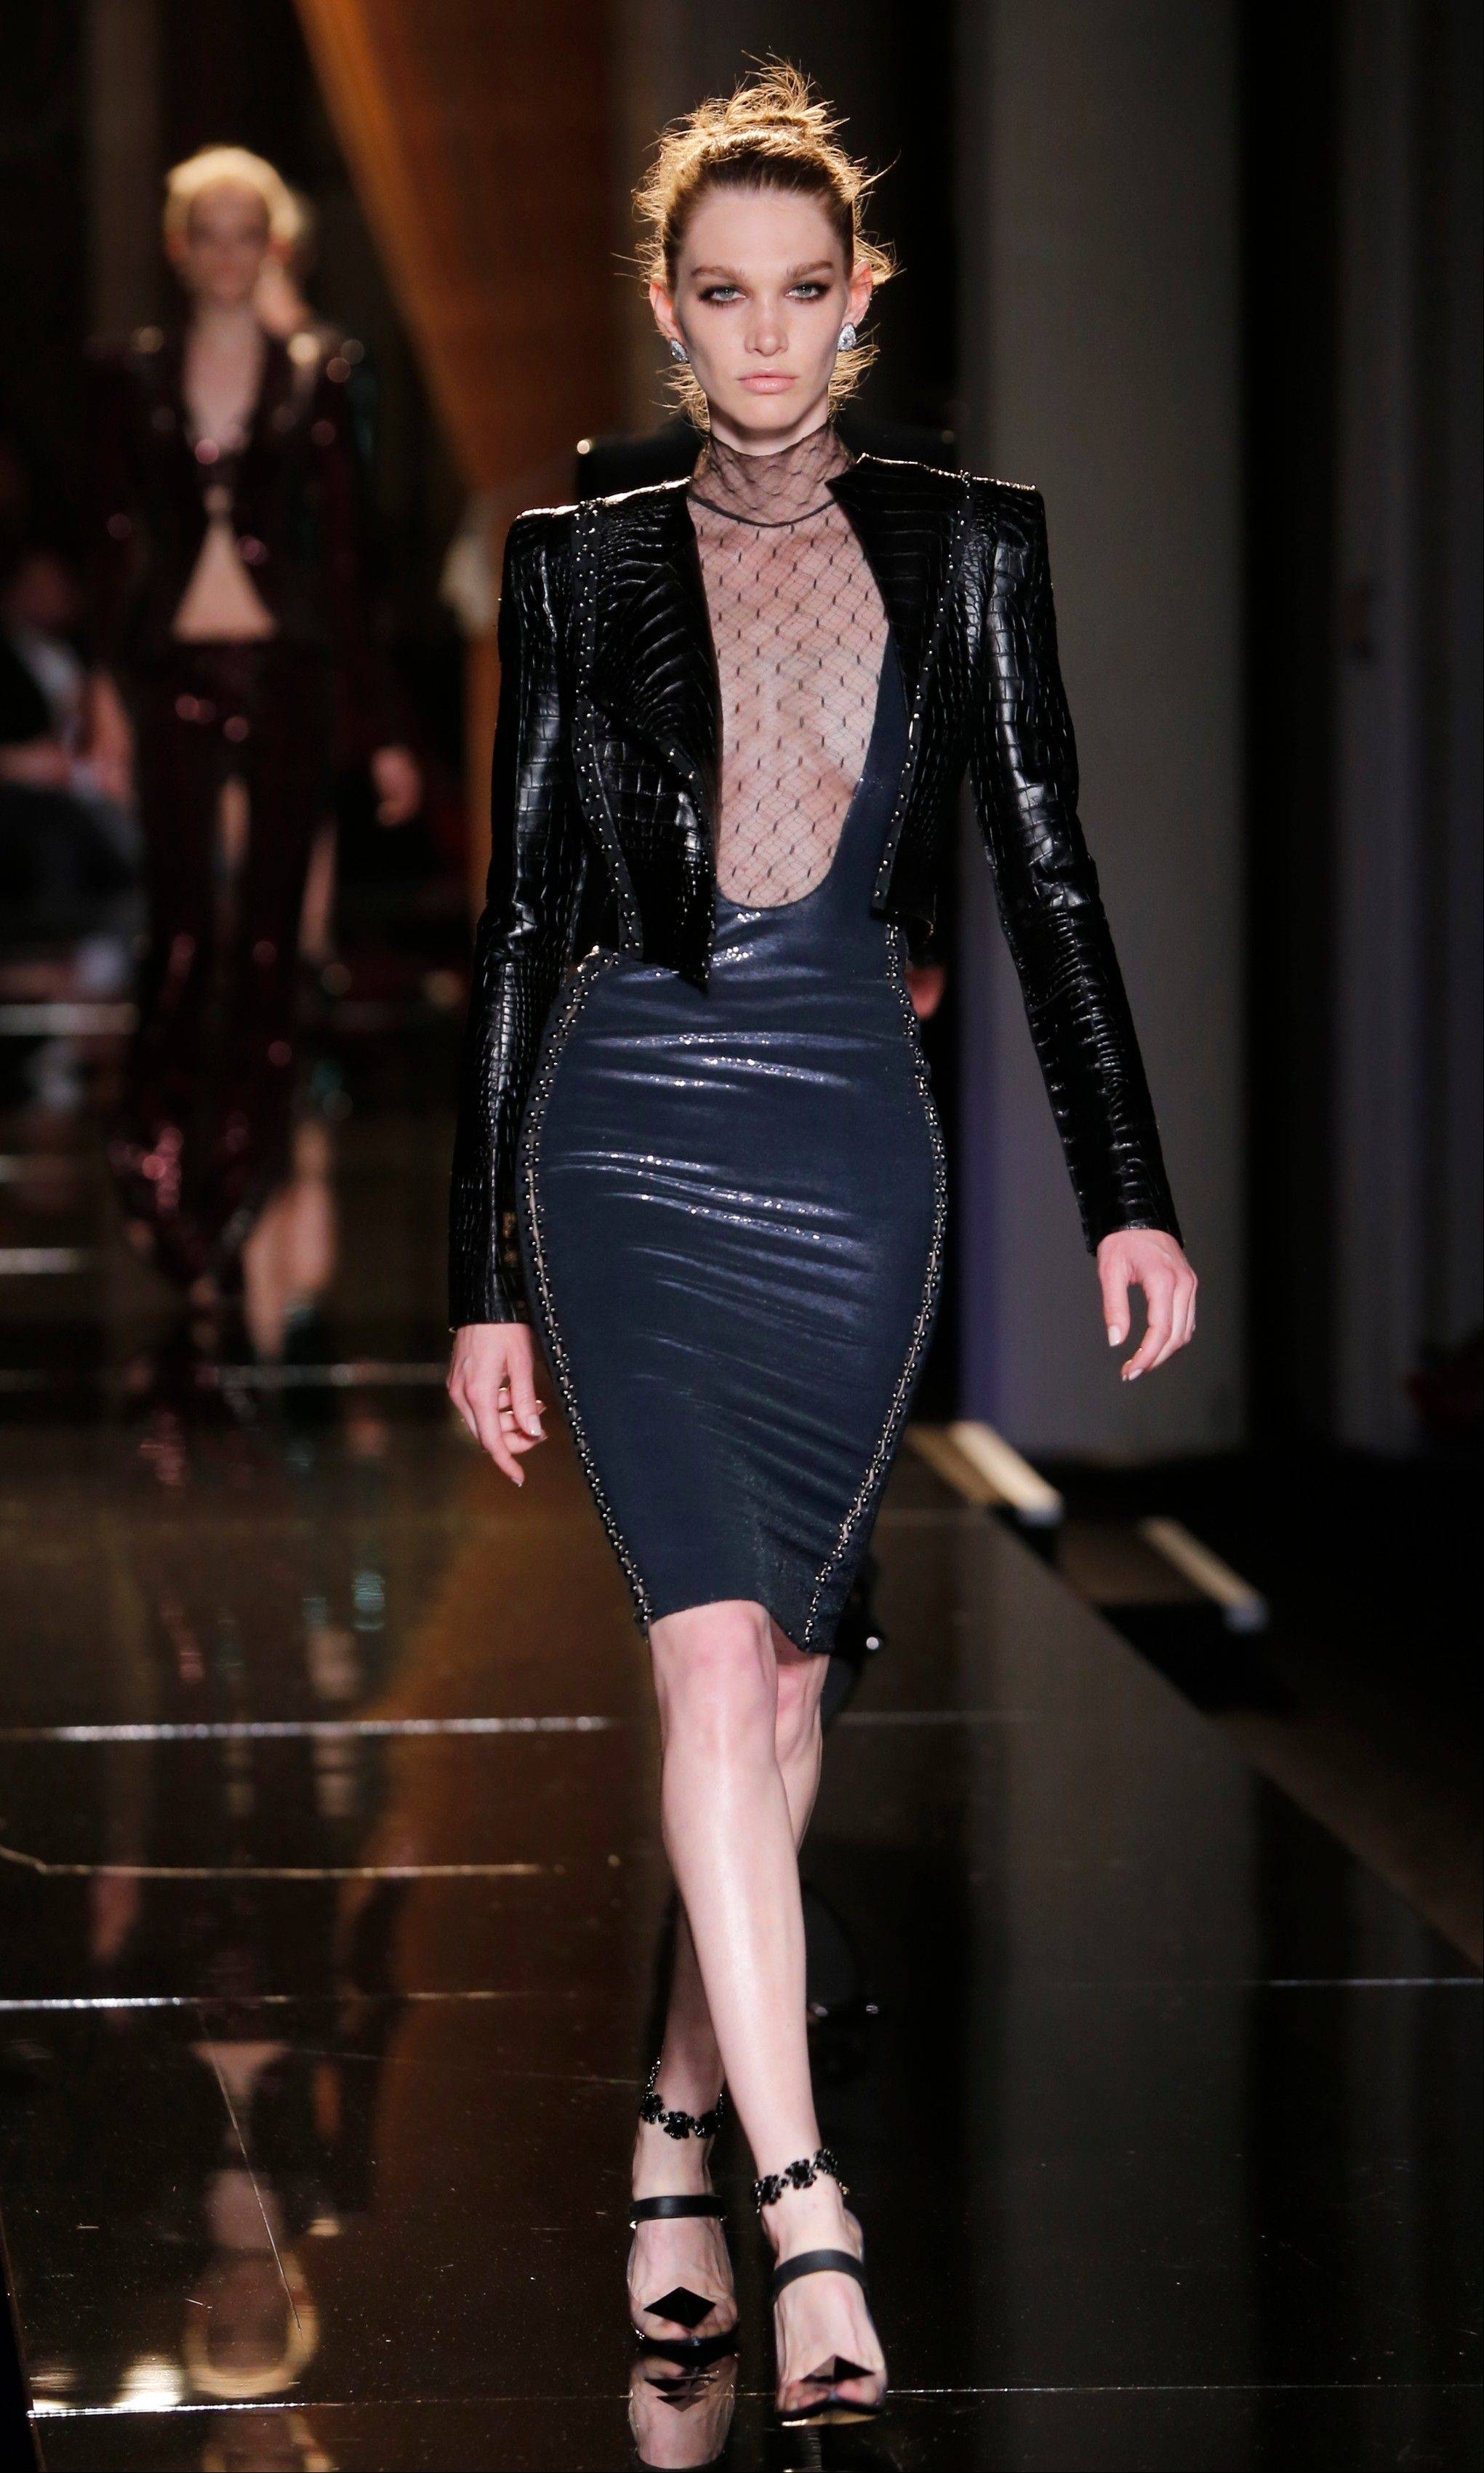 A model wears a creation by fashion designer Donatella Versace during her Women's Fall Winter 2013 haute couture fashion collection in Paris, France.